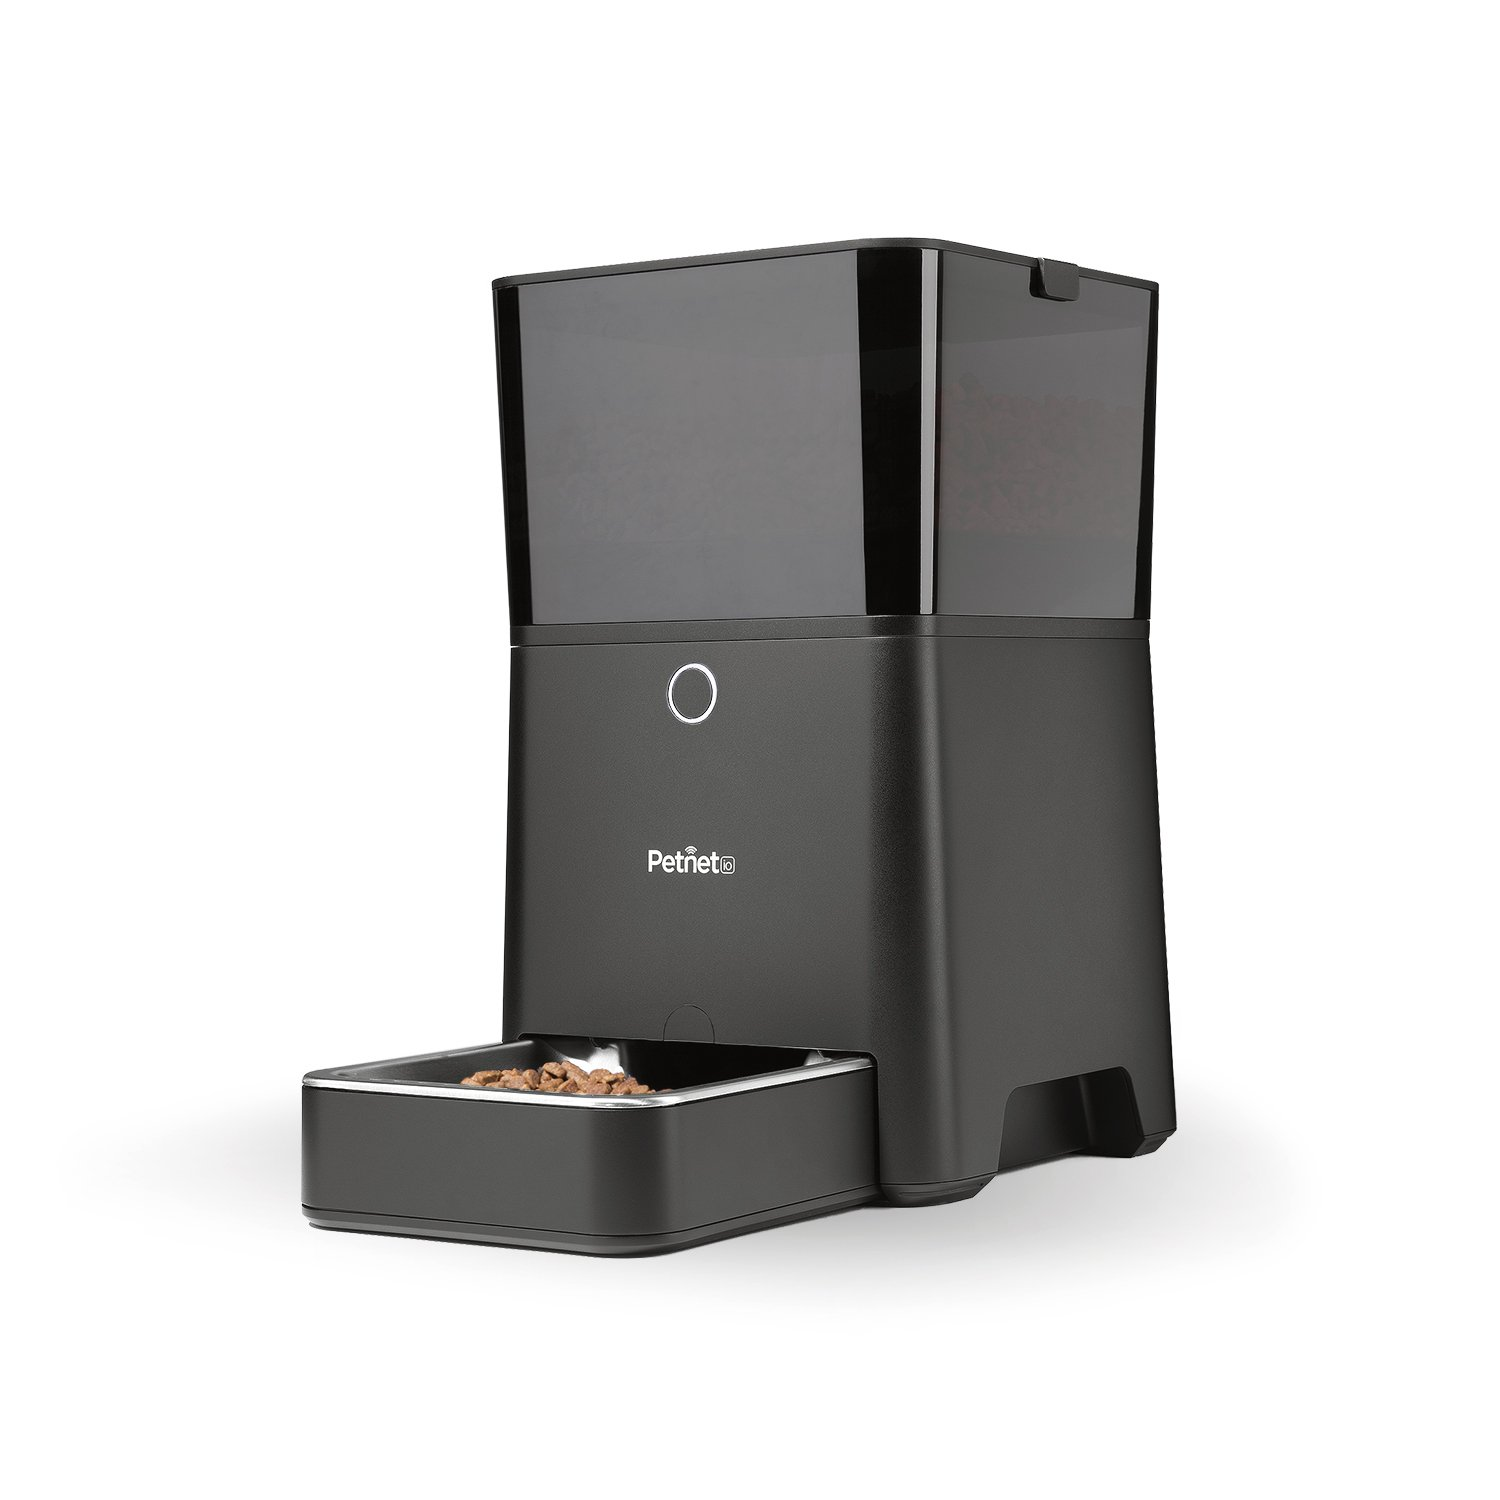 Petnet SmartFeeder, Automatic Pet Feeder for Cats and Dogs, Works with Amazon Alexa by Petnet (Image #3)